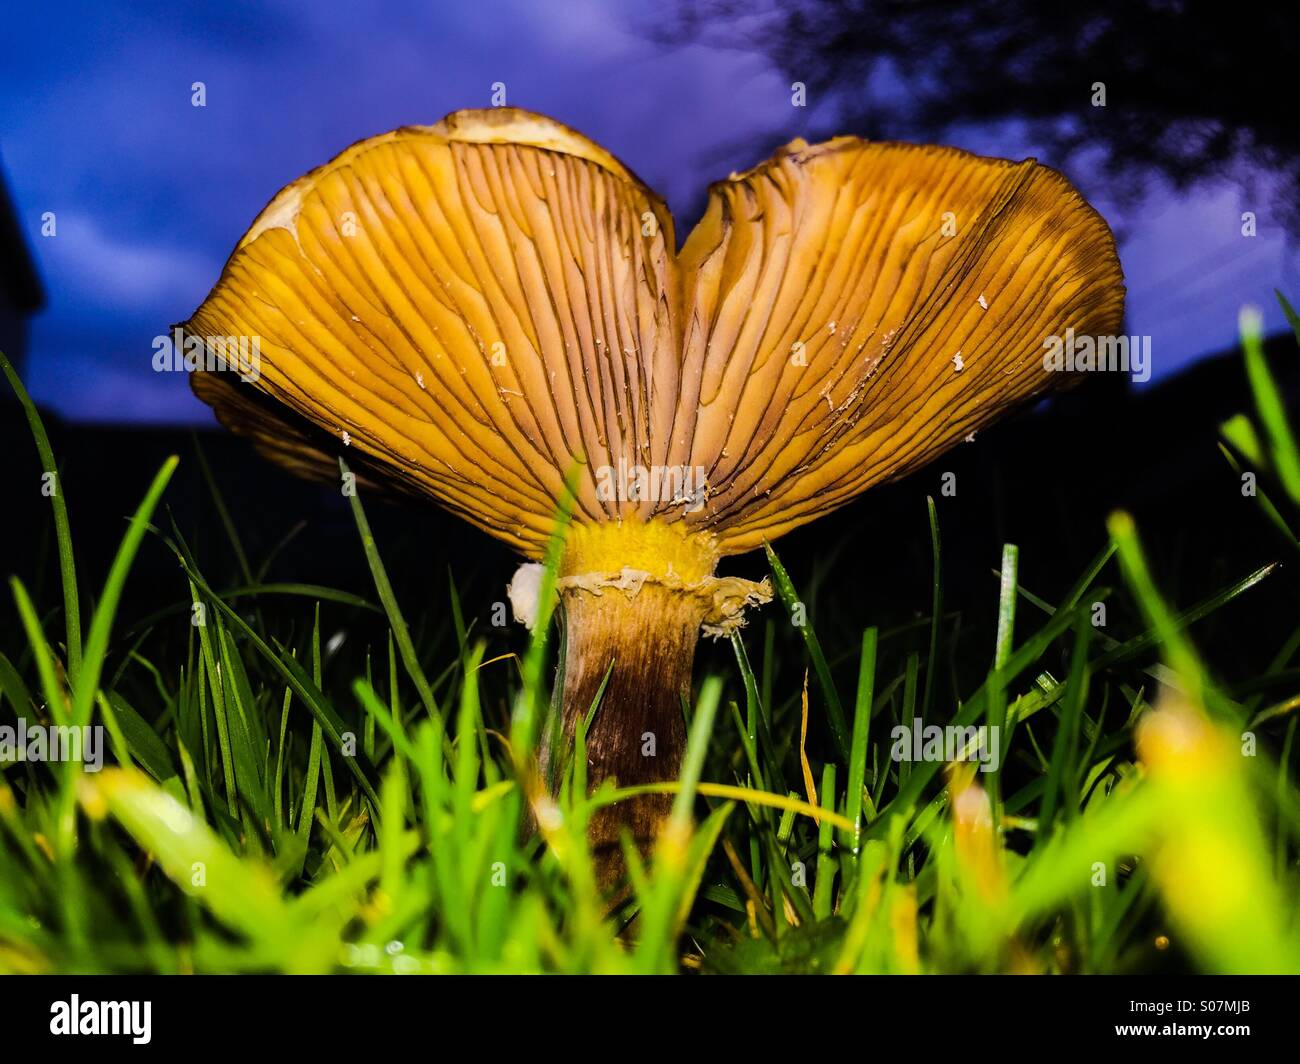 A large Slippery Jack mushroom. Also known as a Sticky Bun Fungus, its Latin name is Suillus luteus. They are edible - Stock Image